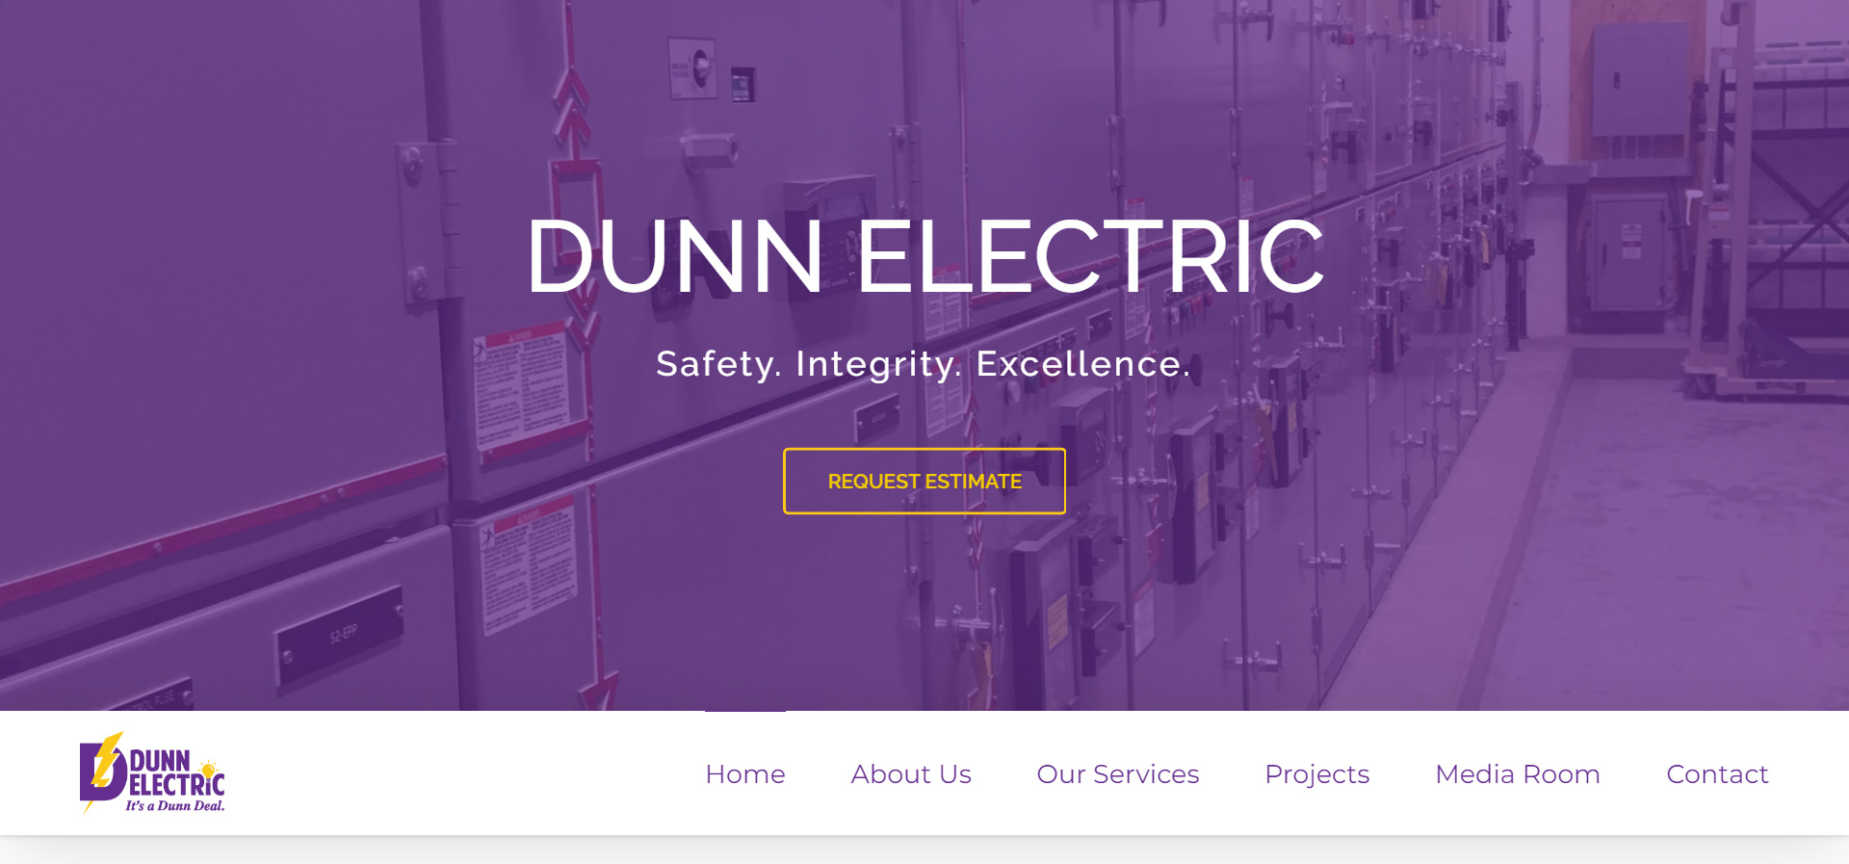 dunn-electric-website-screenshot